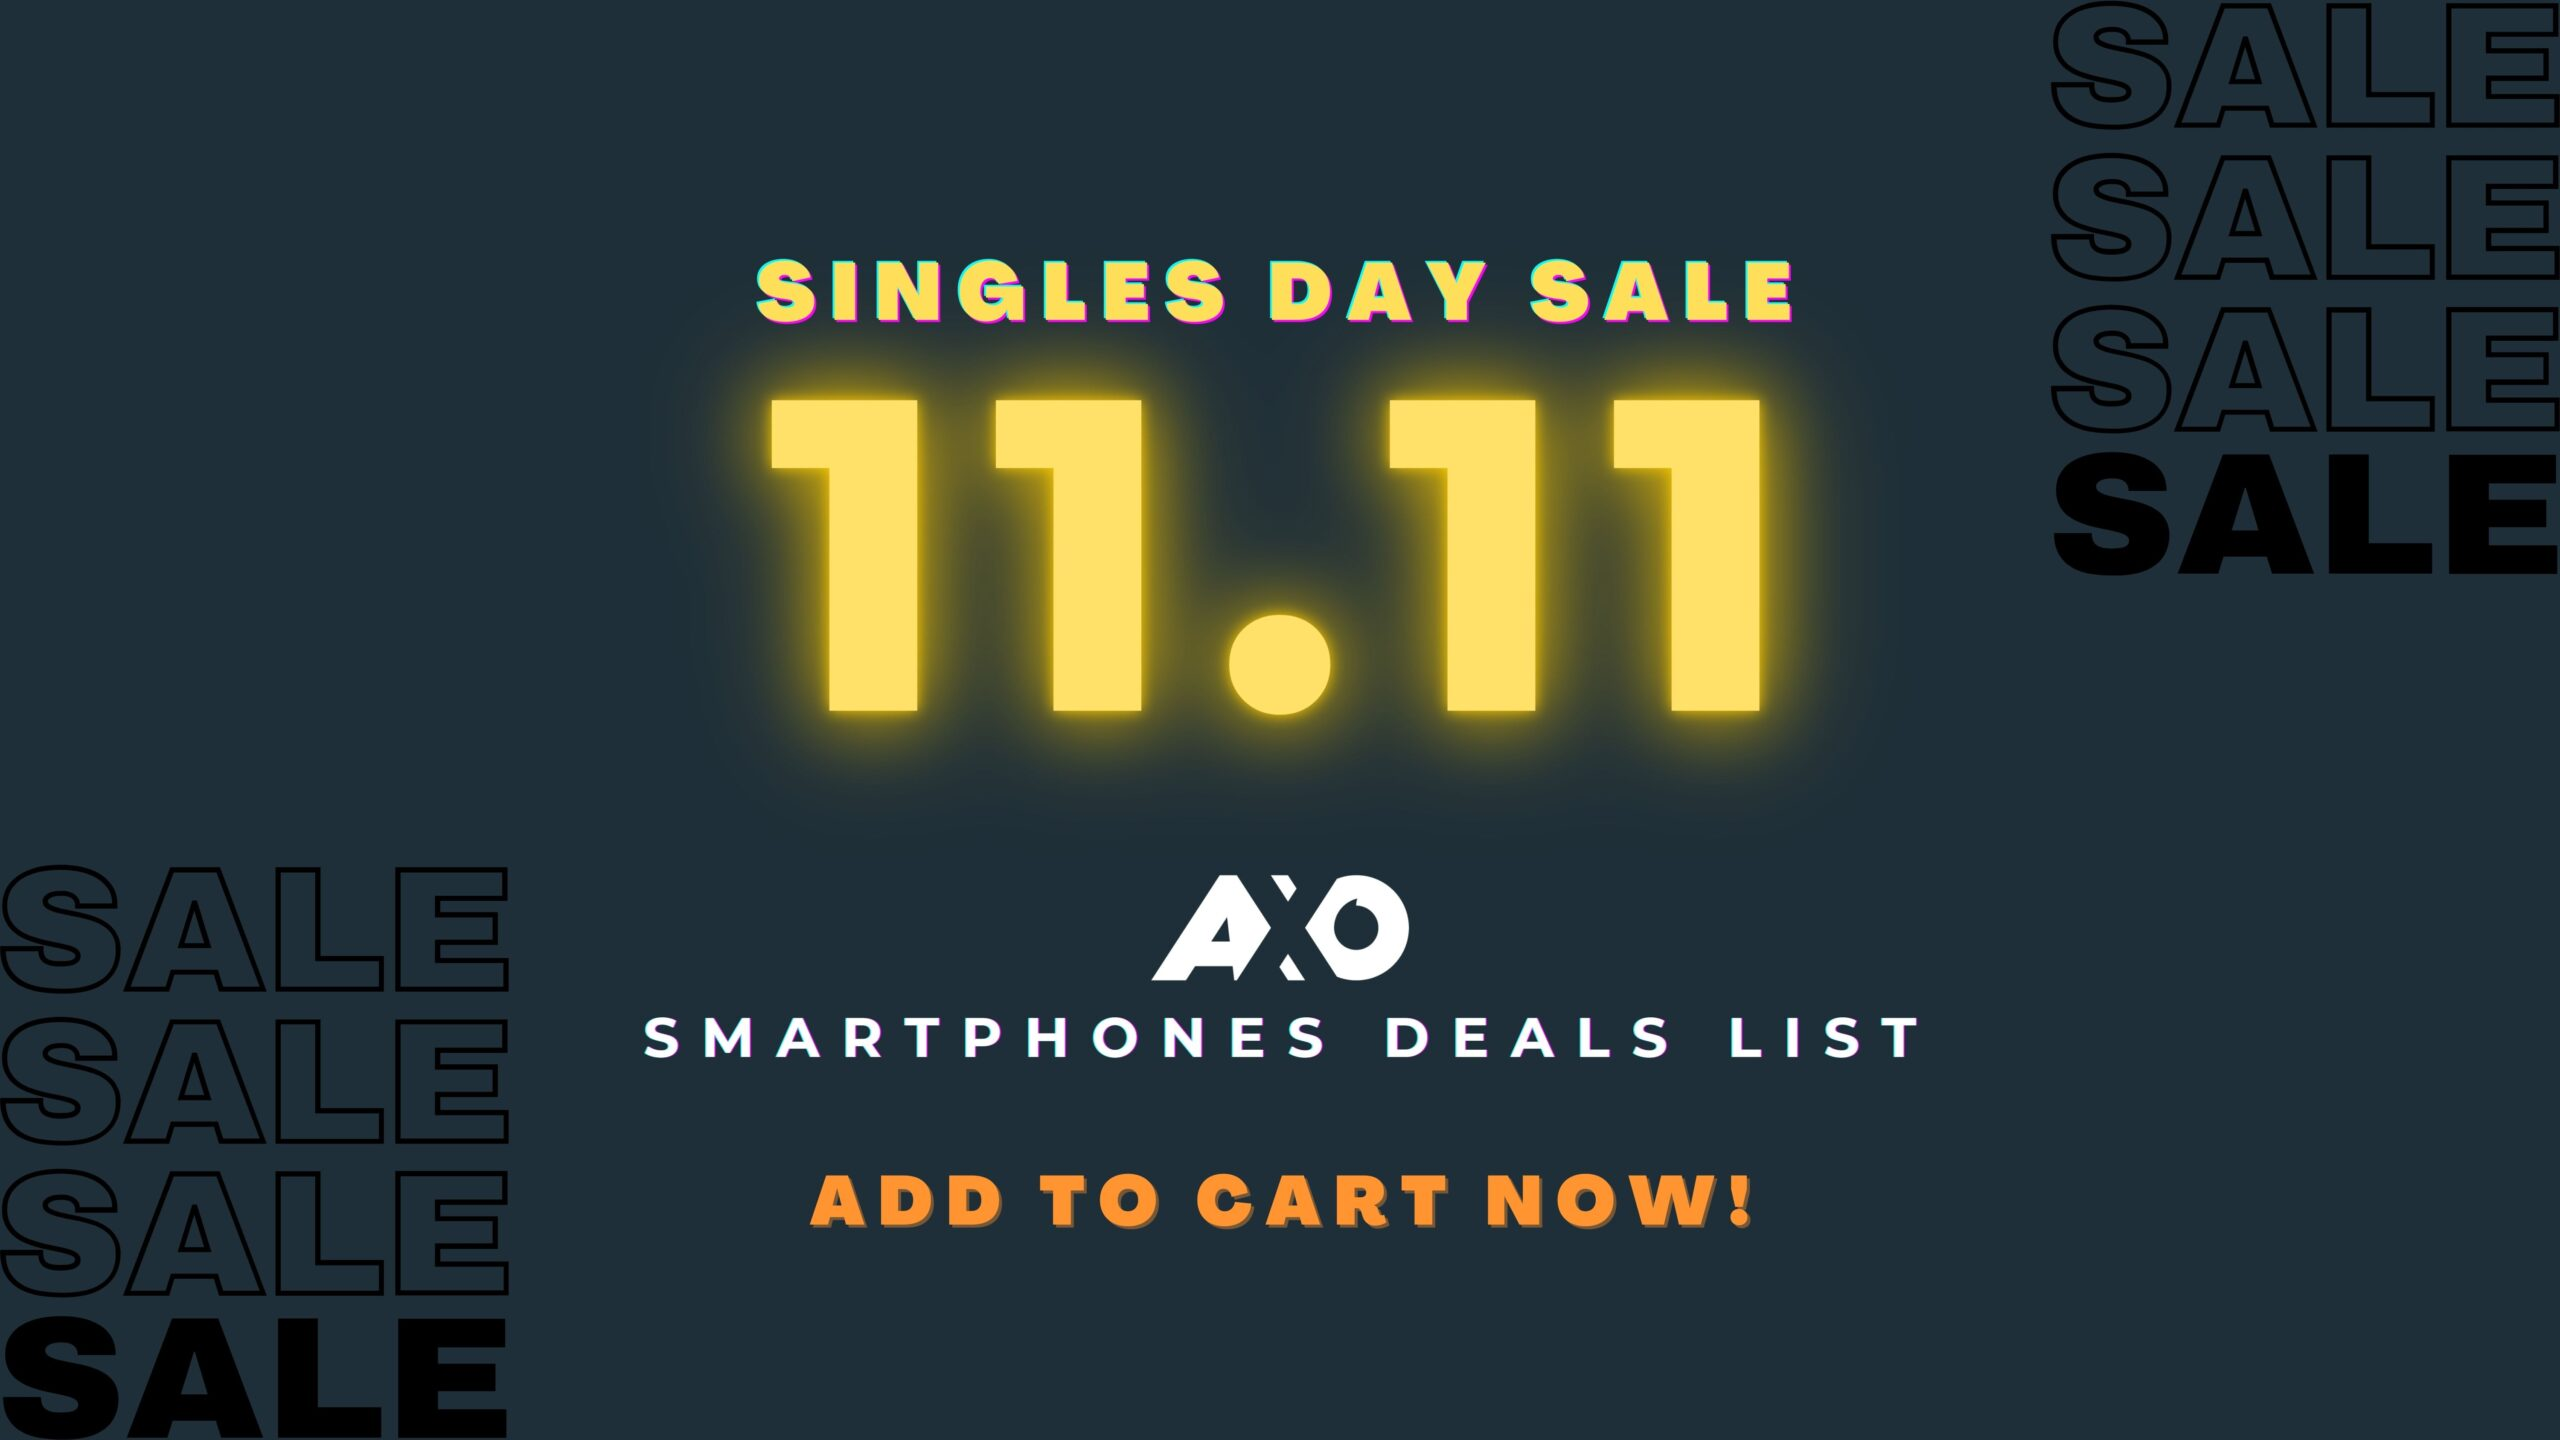 [2020] Singles Day Smartphone Deals this 11.11 Sale! Add To Cart Now! 7